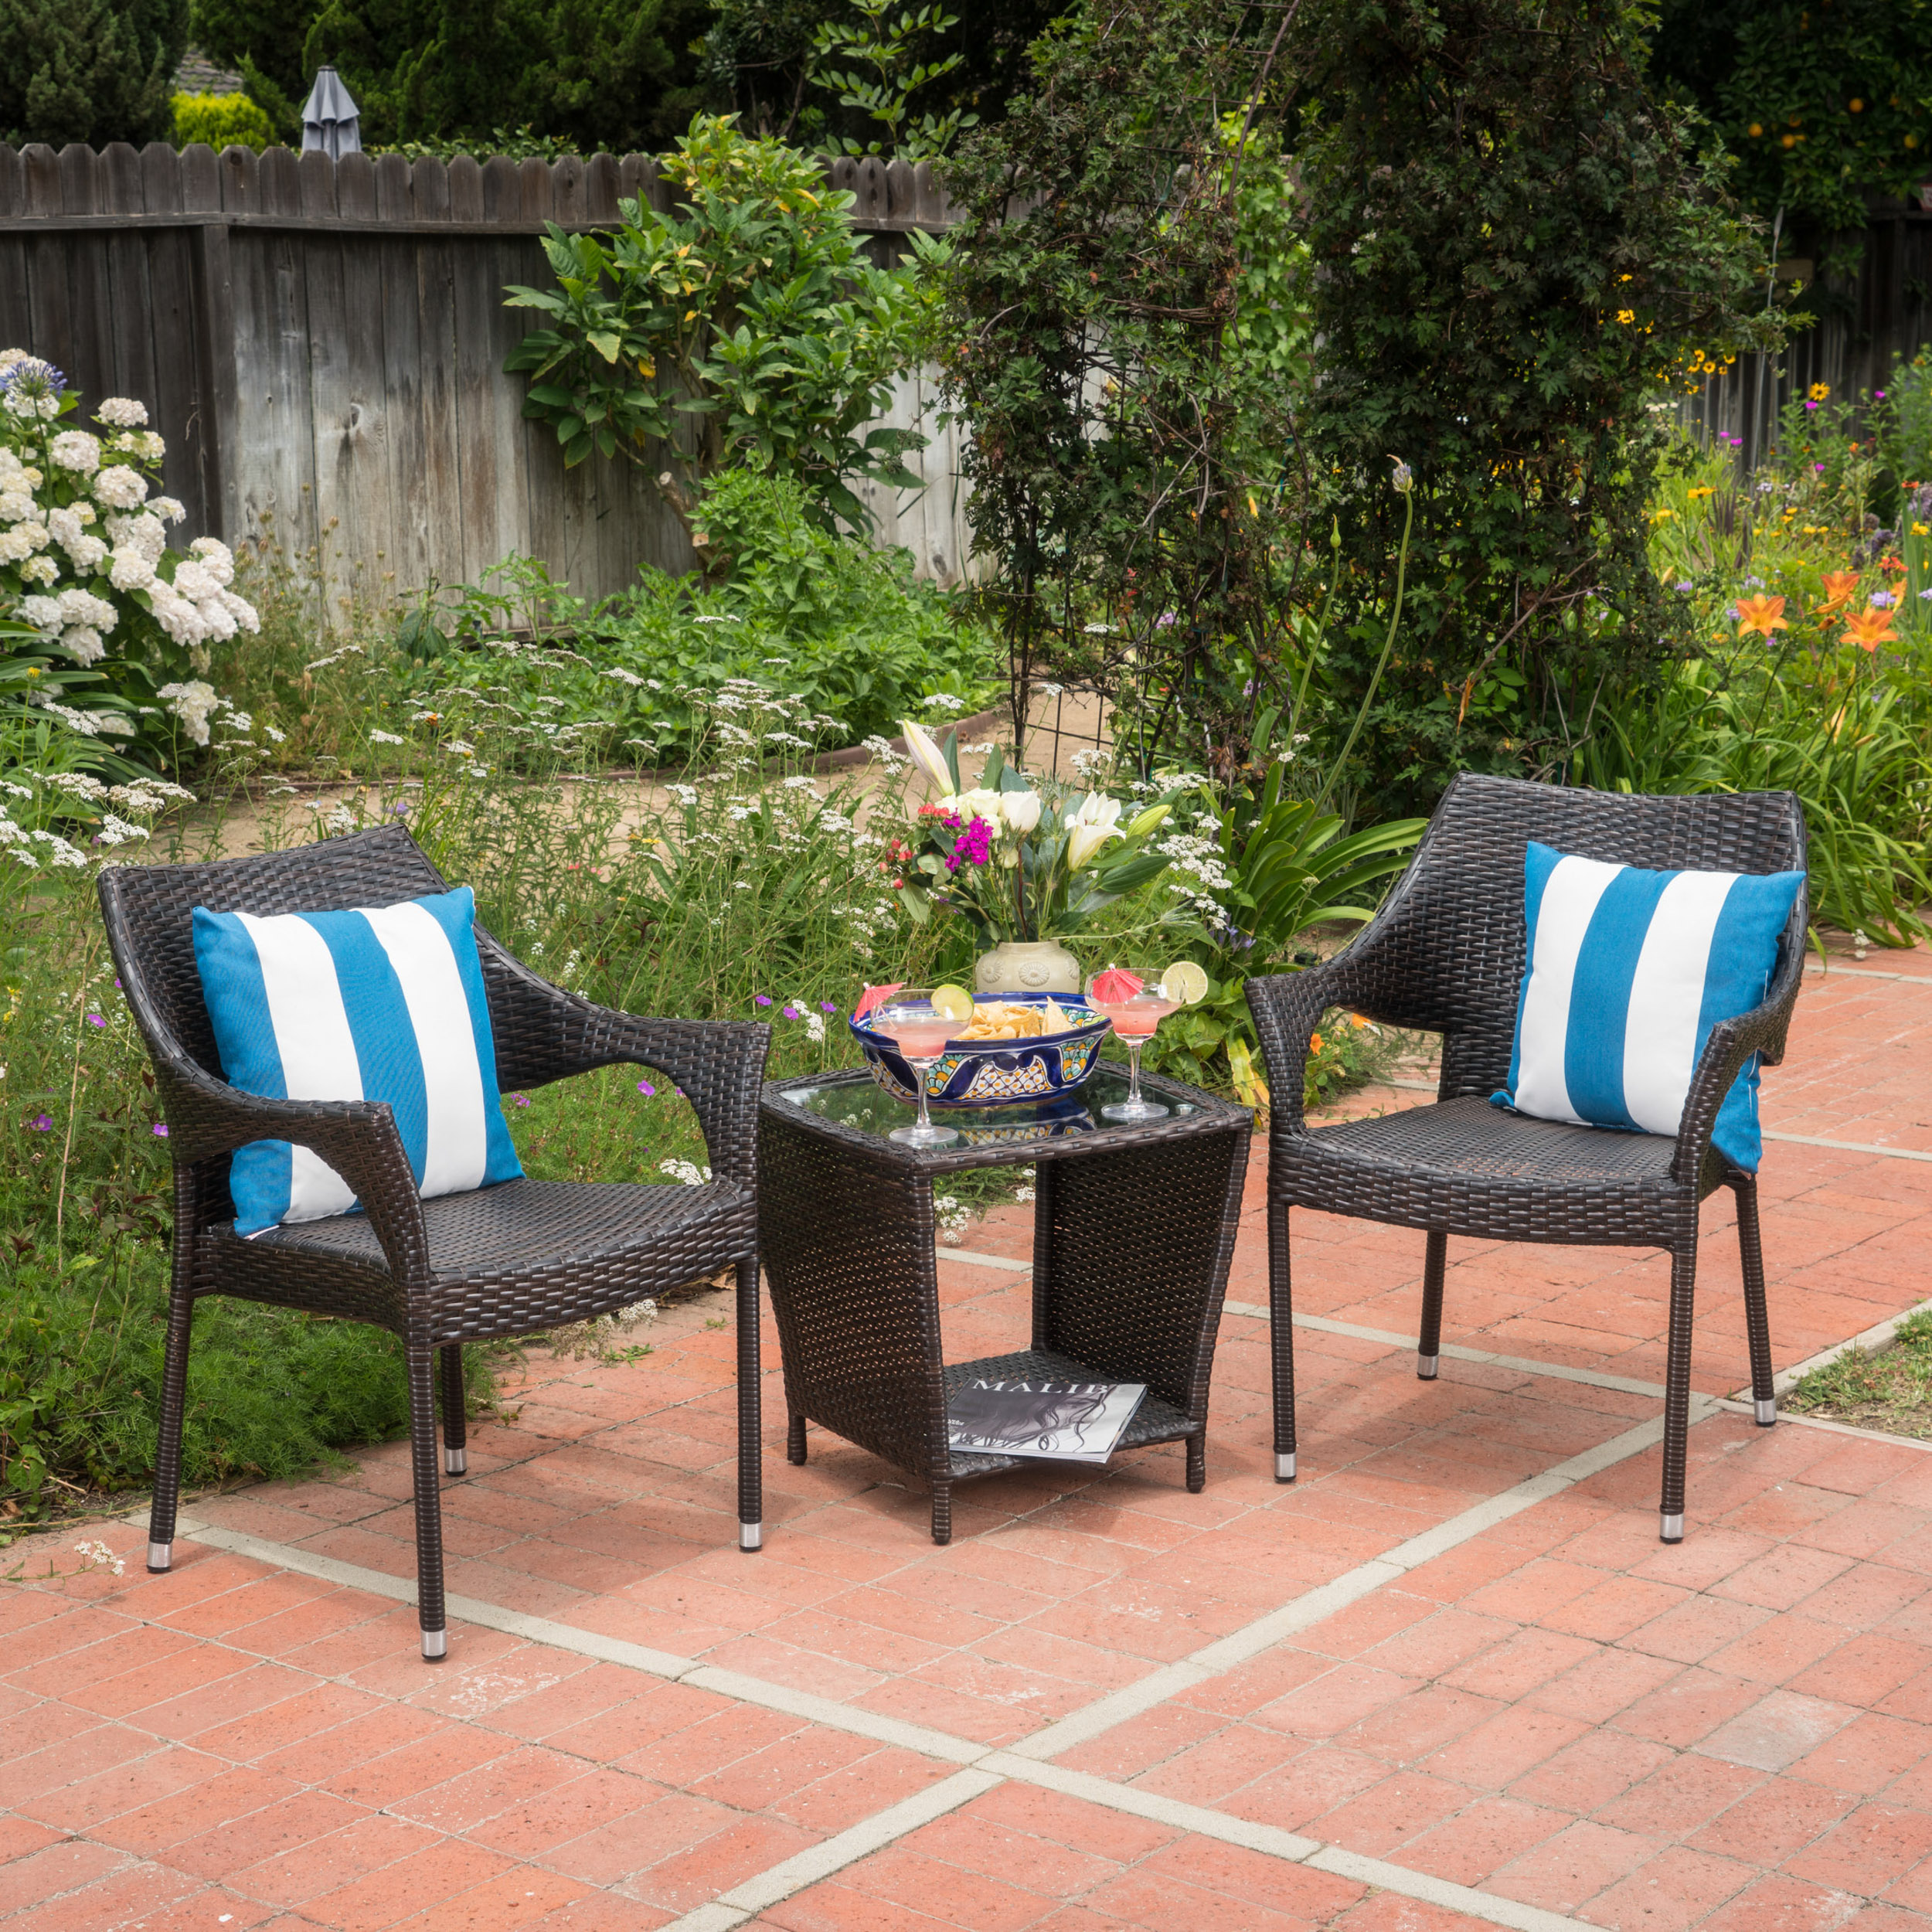 Addison Outdoor 3 Piece Wicker Stacking Chair Chat Set, Multibrown